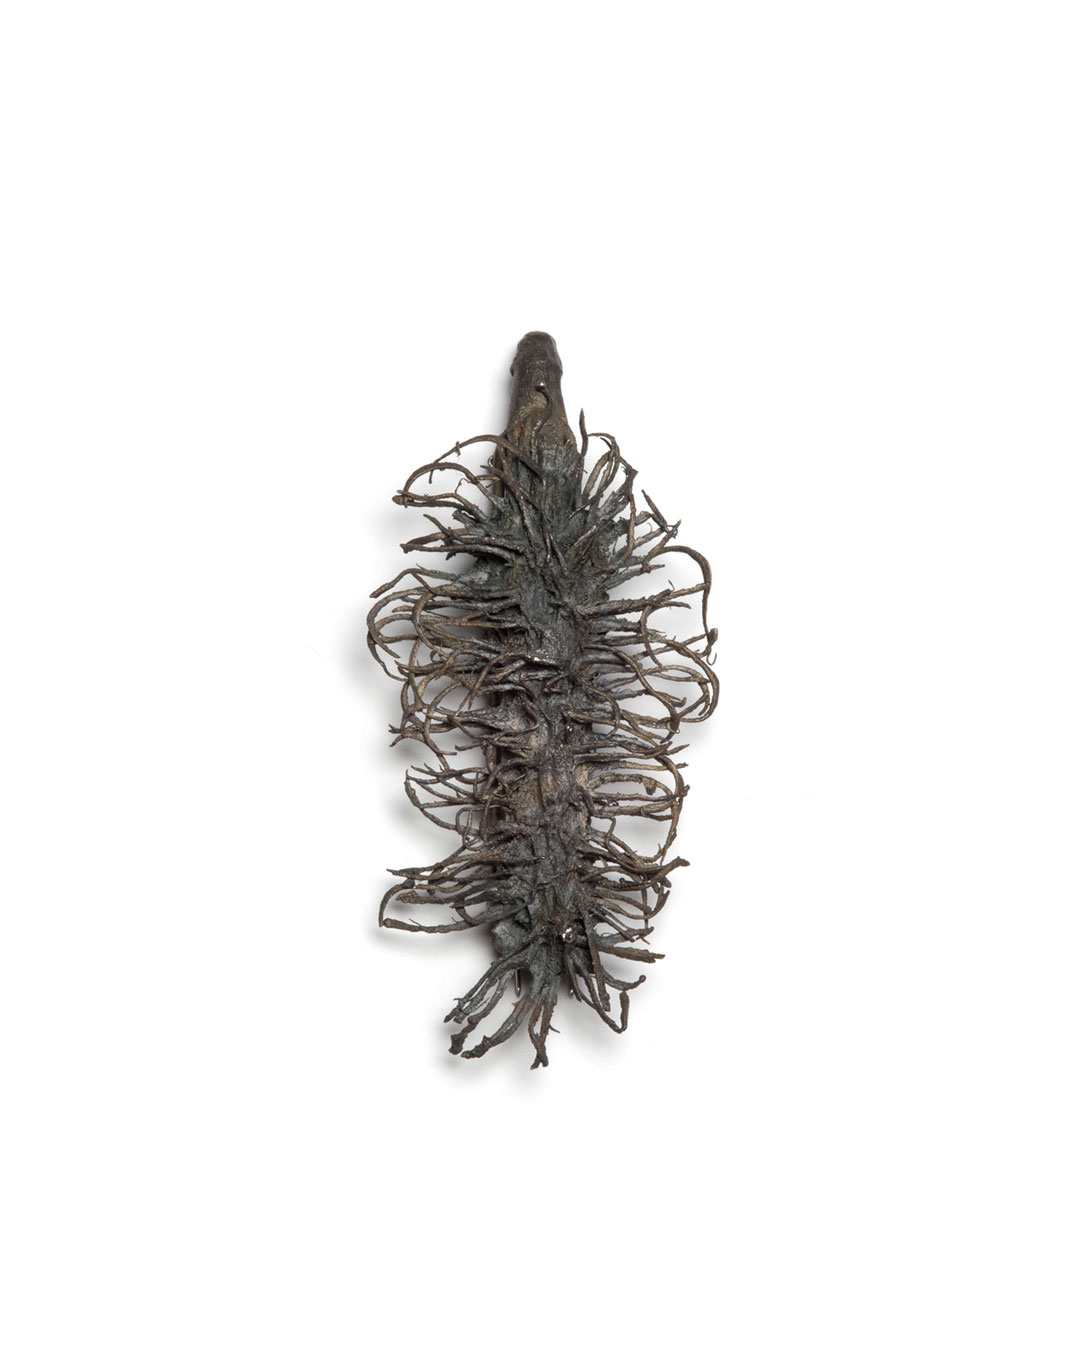 Winfried Krüger, untitled, 2001, brooch; oxidised silver, 120 x 50 mm, €970